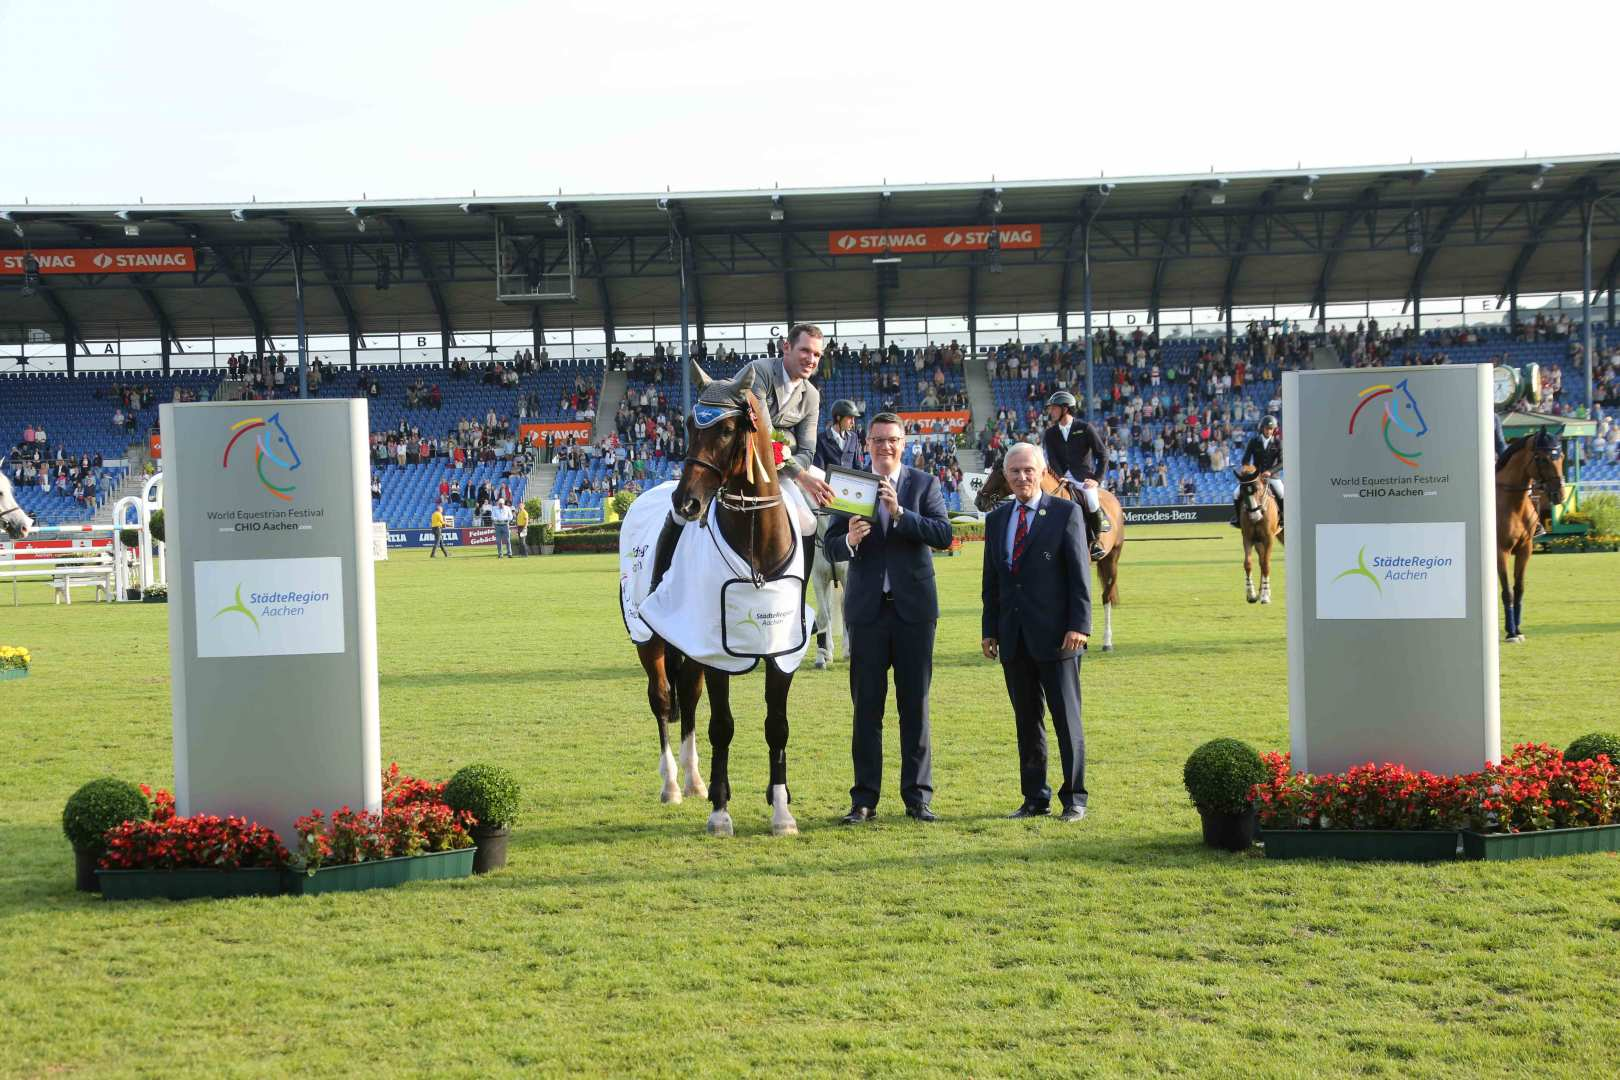 Philipp Weishaupt scores a victory in Aachen